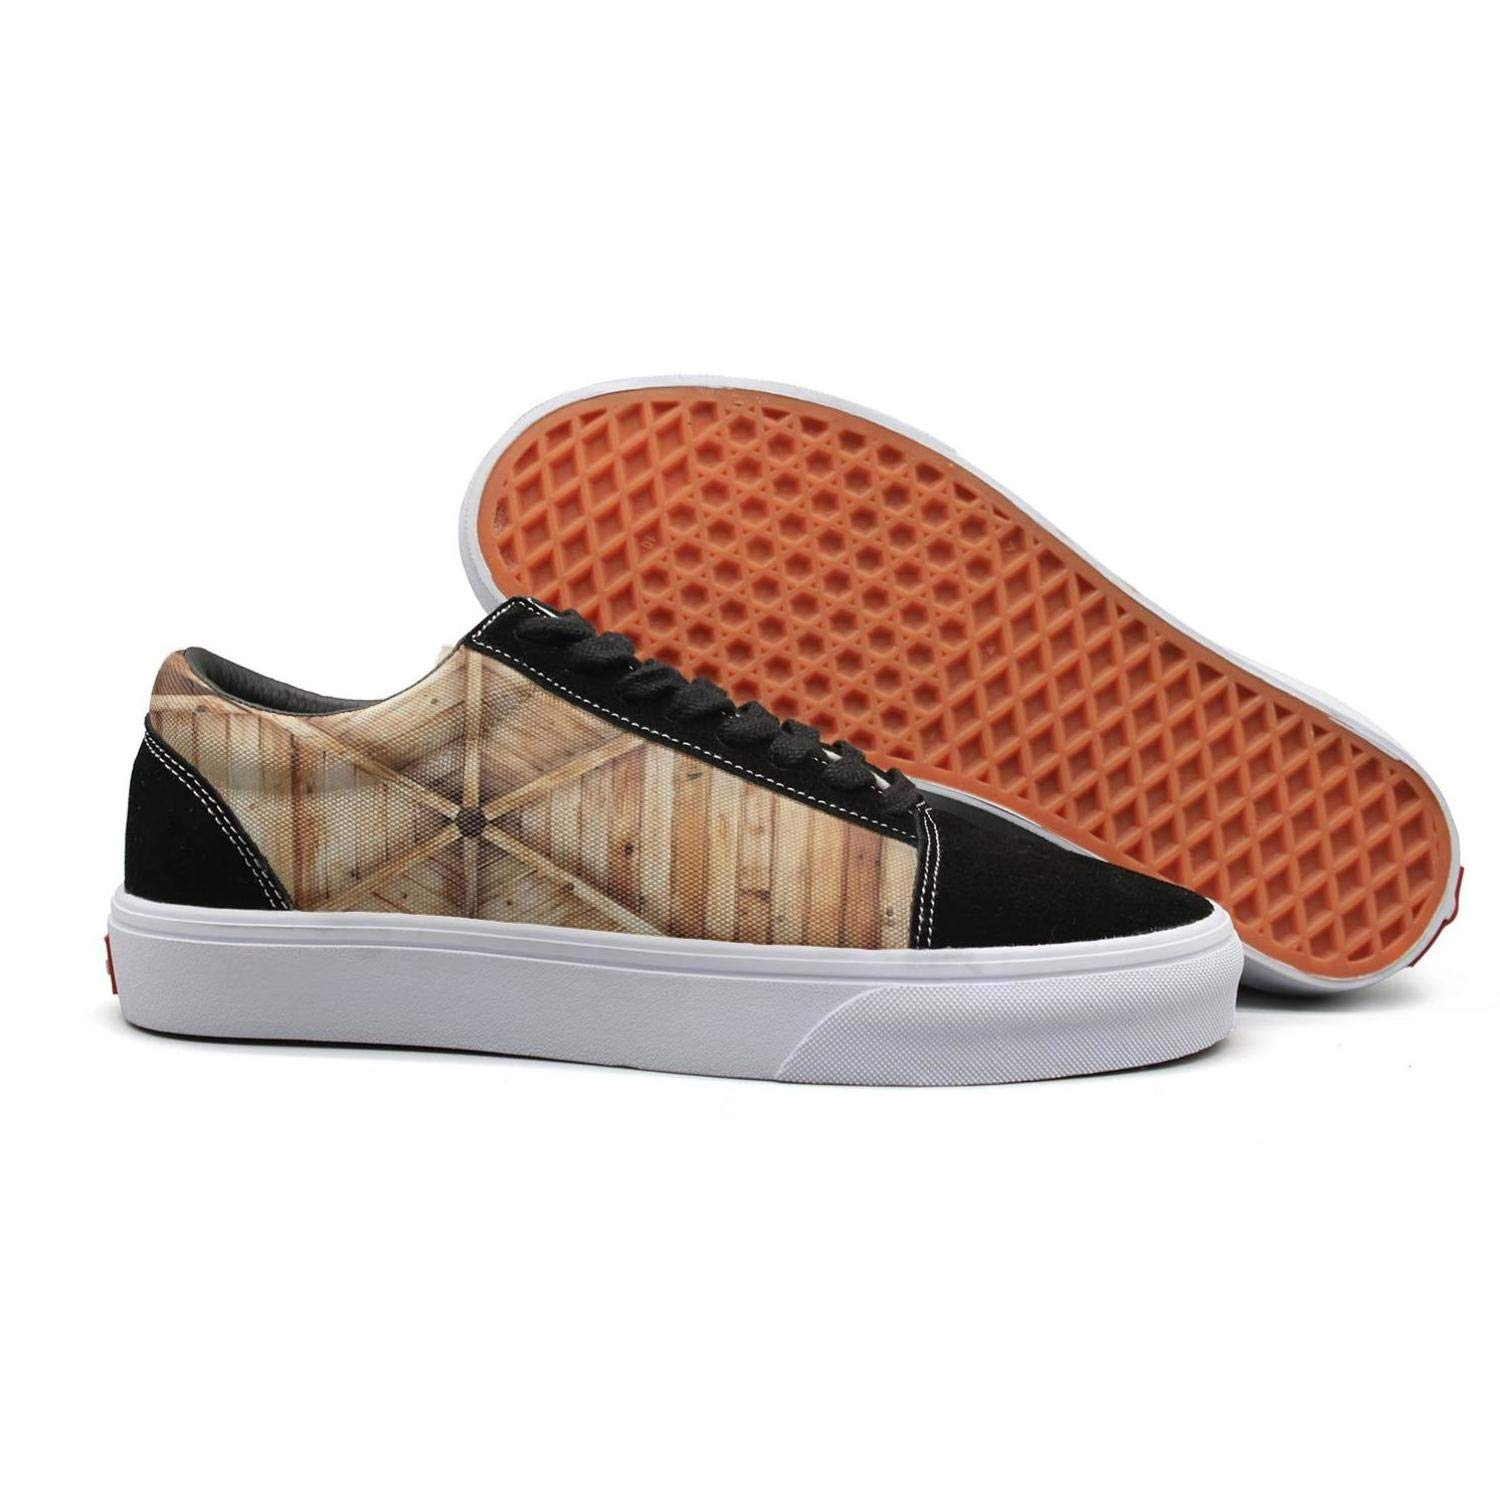 Wonderland Lovers Rustic Wooden barn Farmhouse Rural Unisex Canvas Sneakers Low Top Loafers for Casual Activities